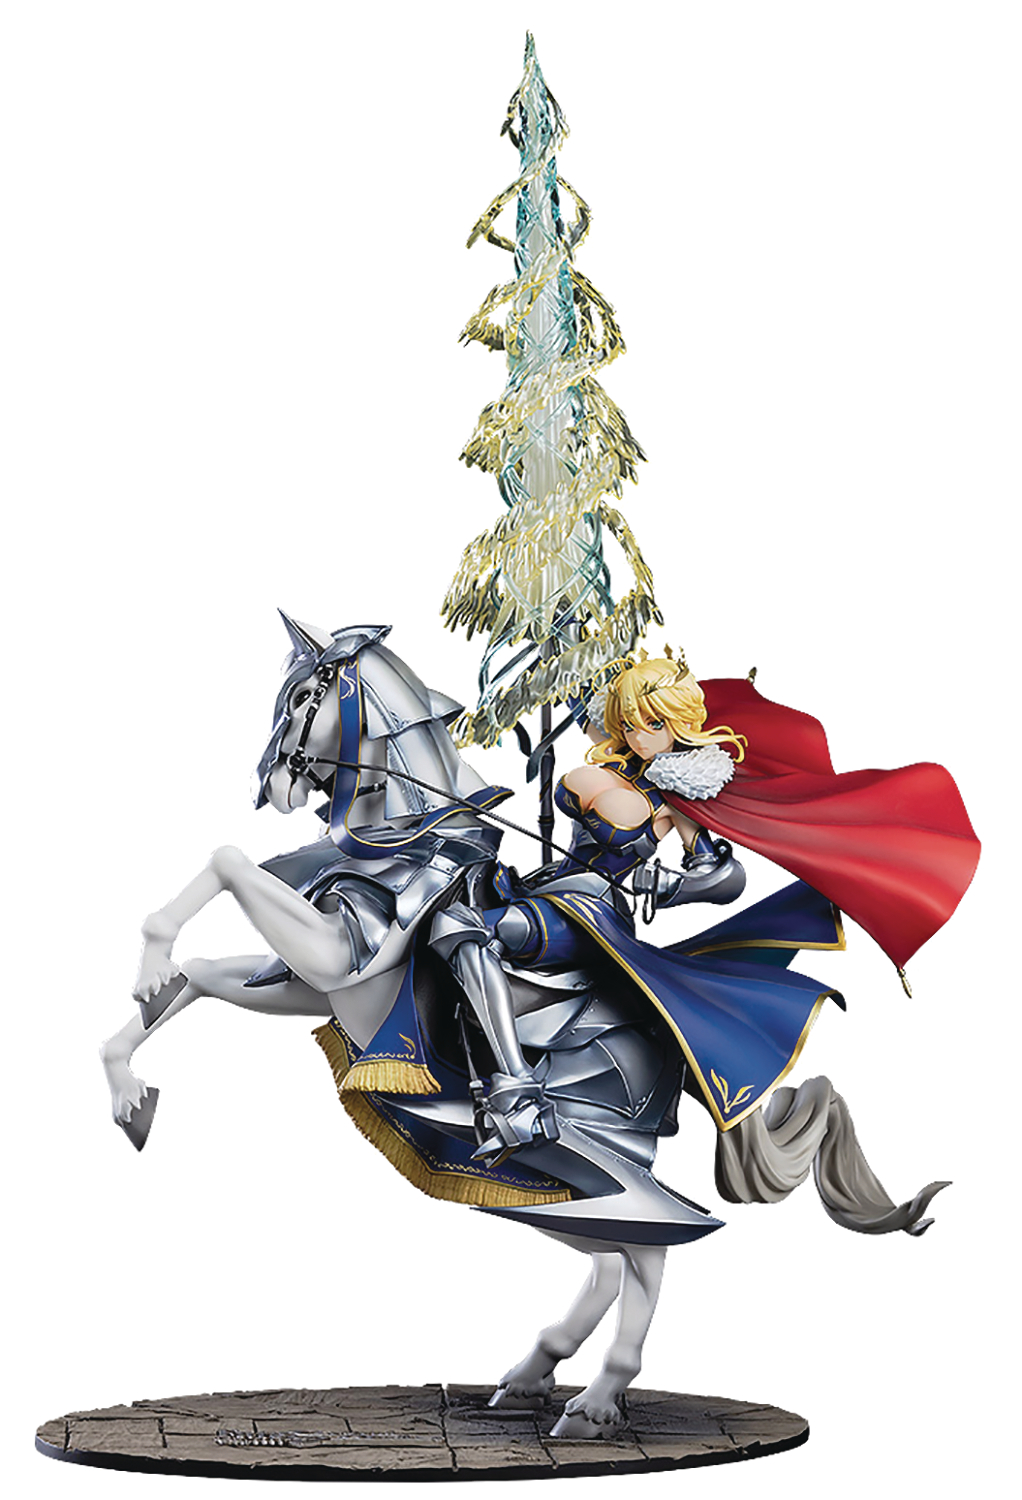 FATE GRAND ORDER LANCER ALTRIA PENDRAGON 1/8 PVC FIG